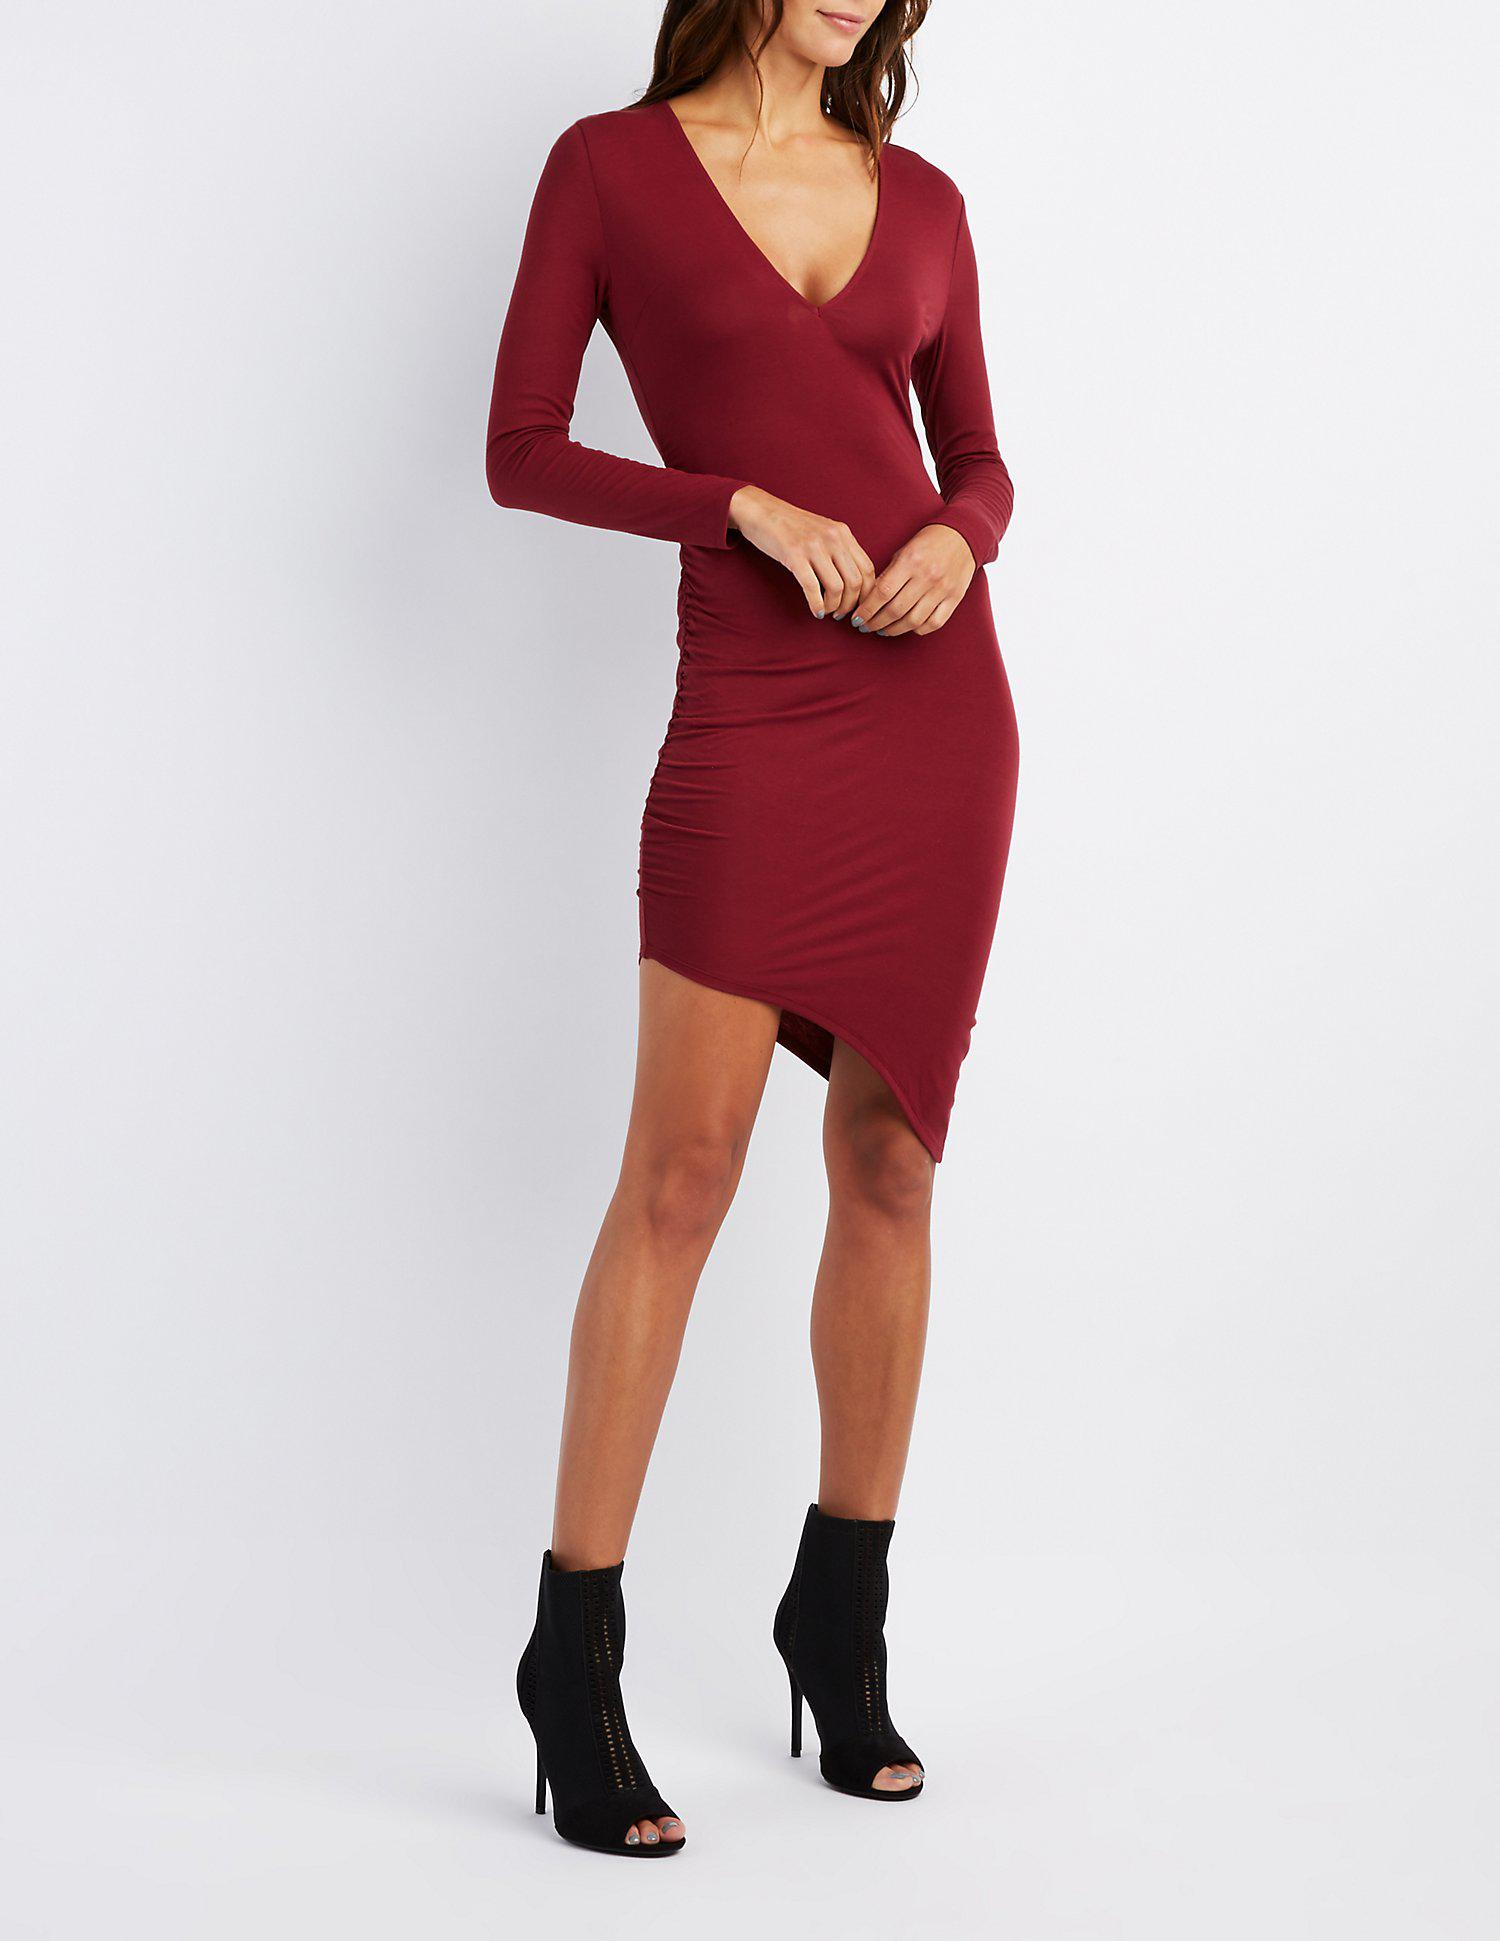 1e0c1673136e Gallery. Previously sold at: Charlotte Russe · Women's Bodycon Dresses